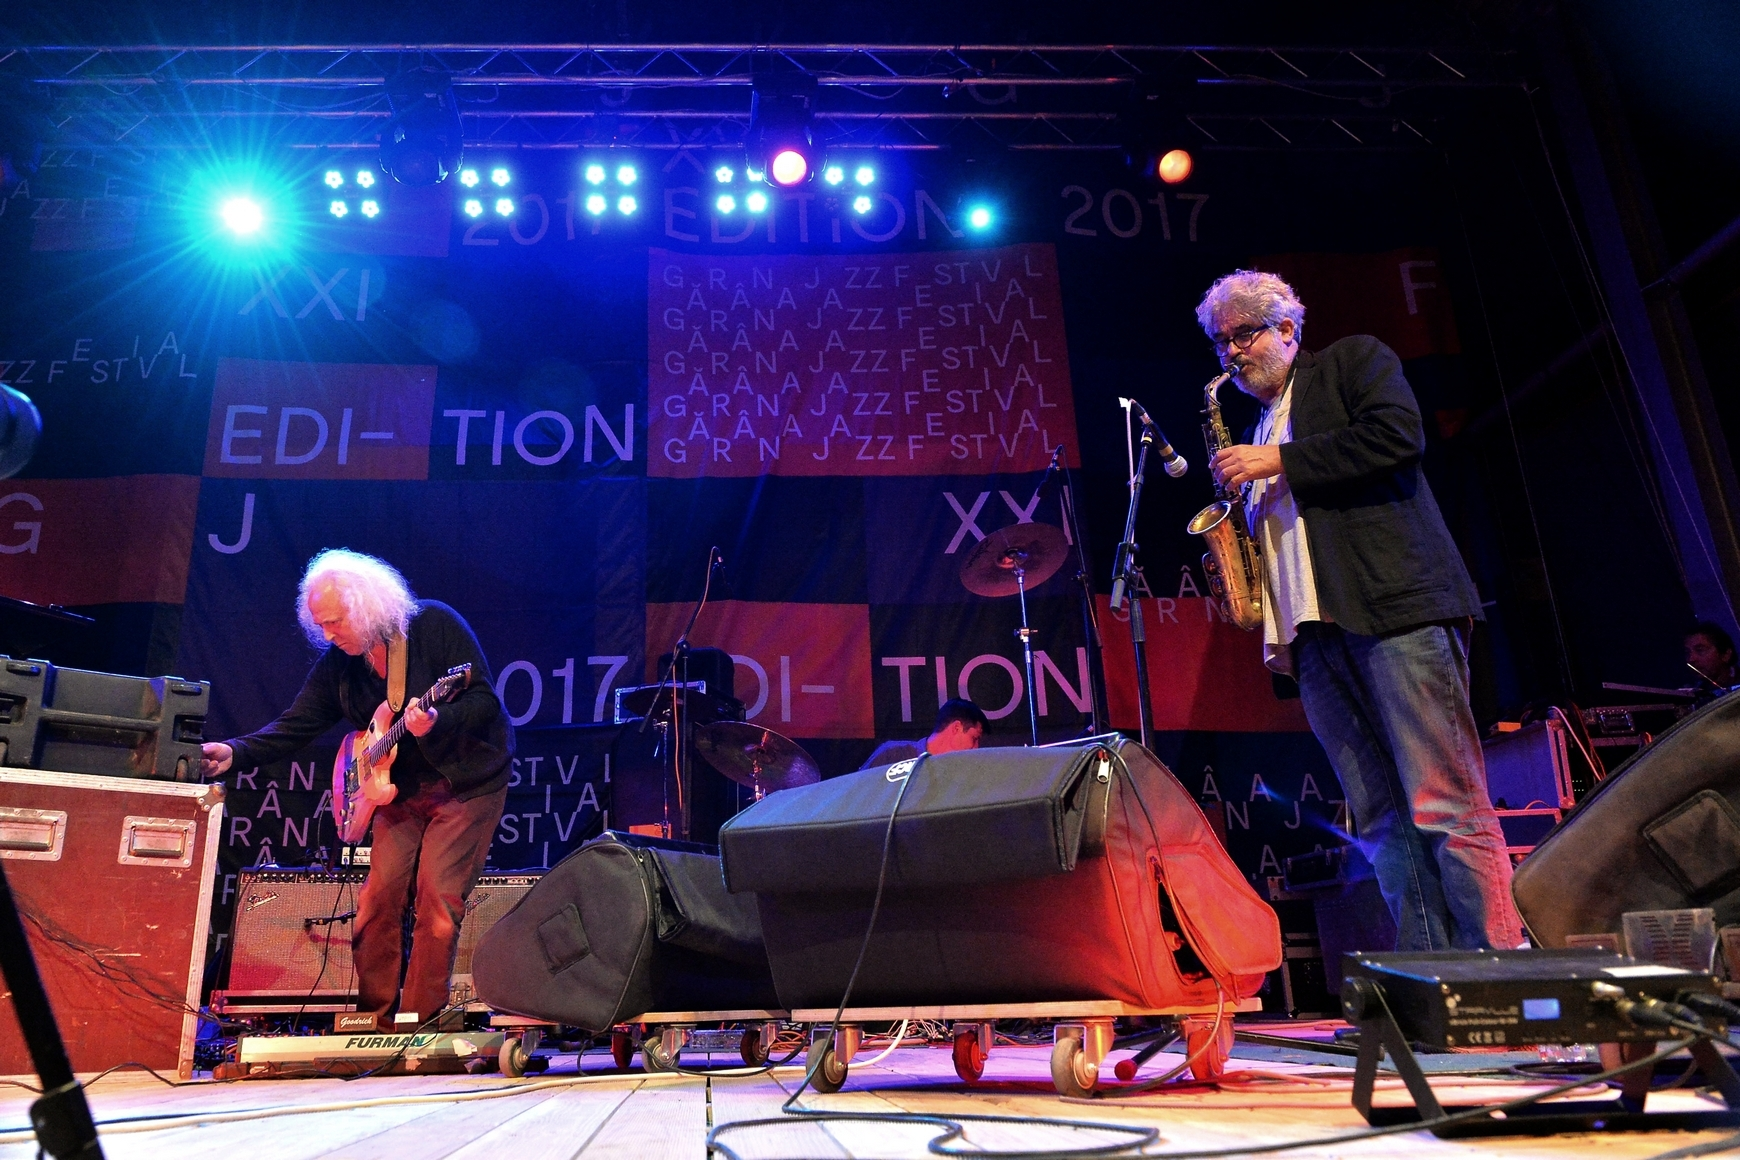 David Torn with Sun Of Goldfinger Project at Garana Jazz Festival 2017